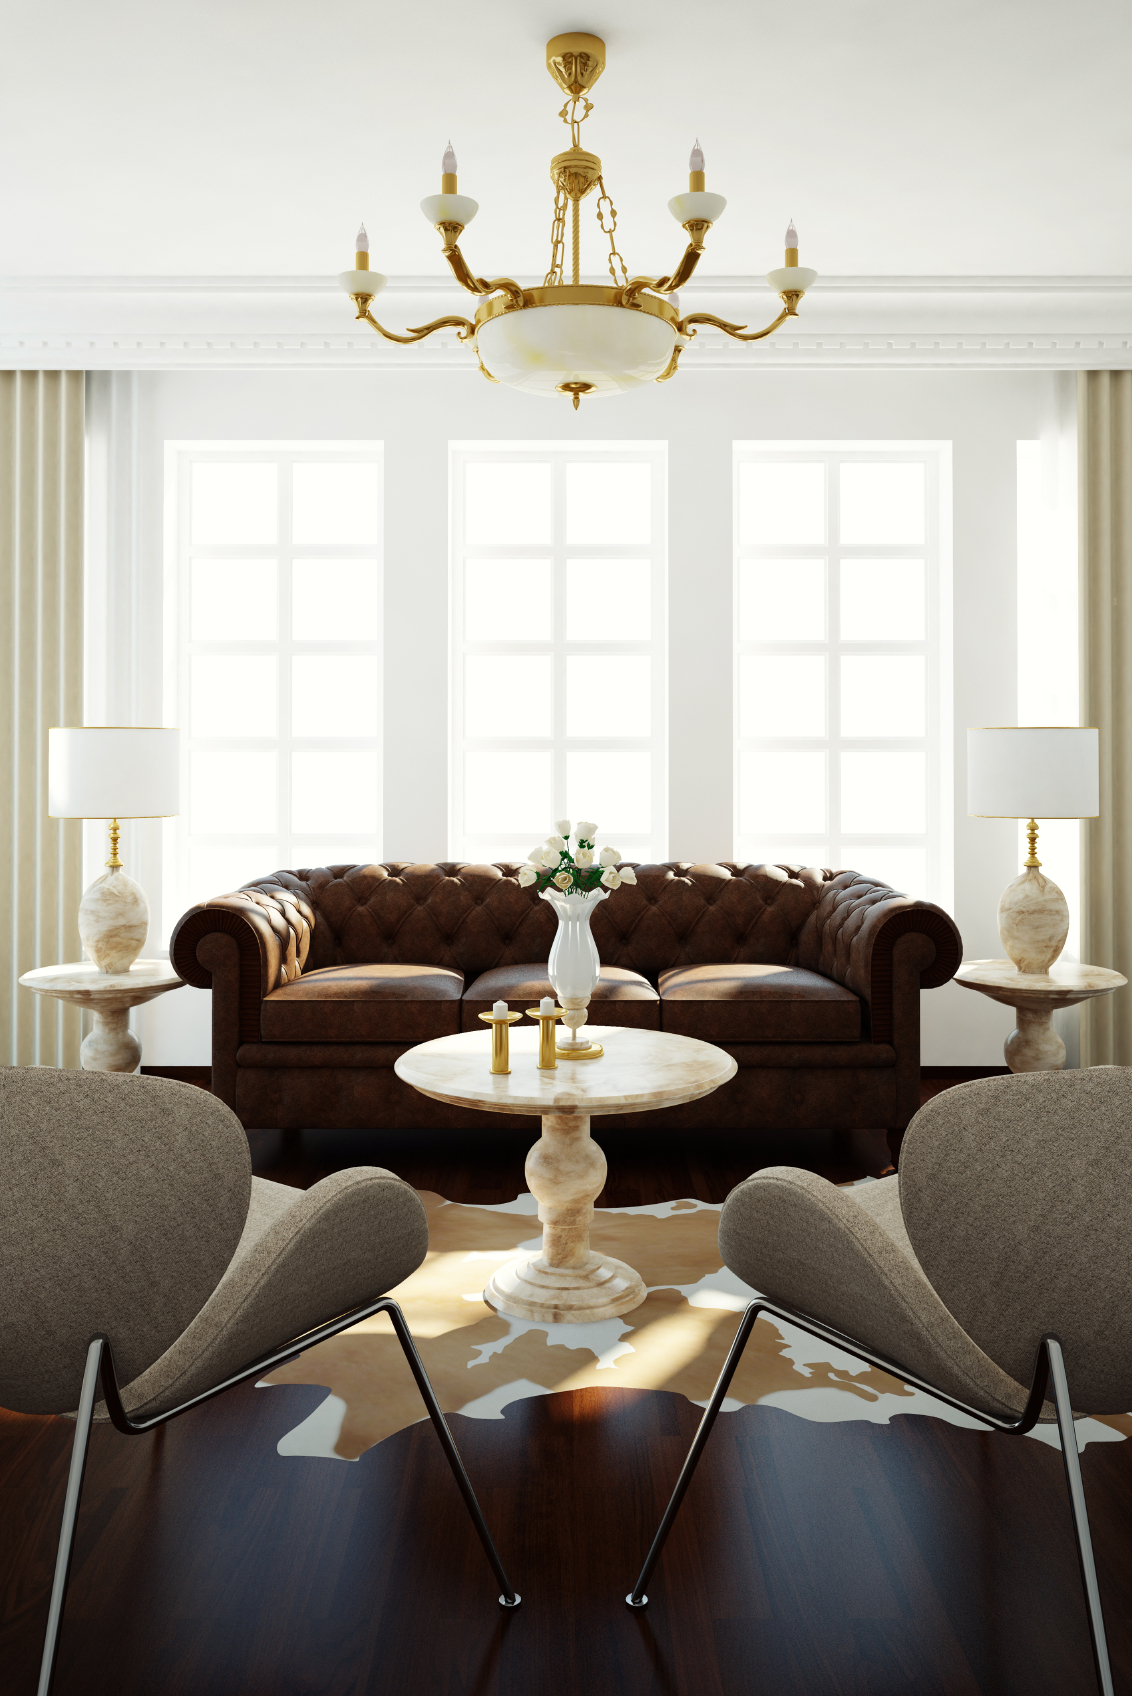 Simple chairs are paired with a quilted rich brown sofa matching marble side tables